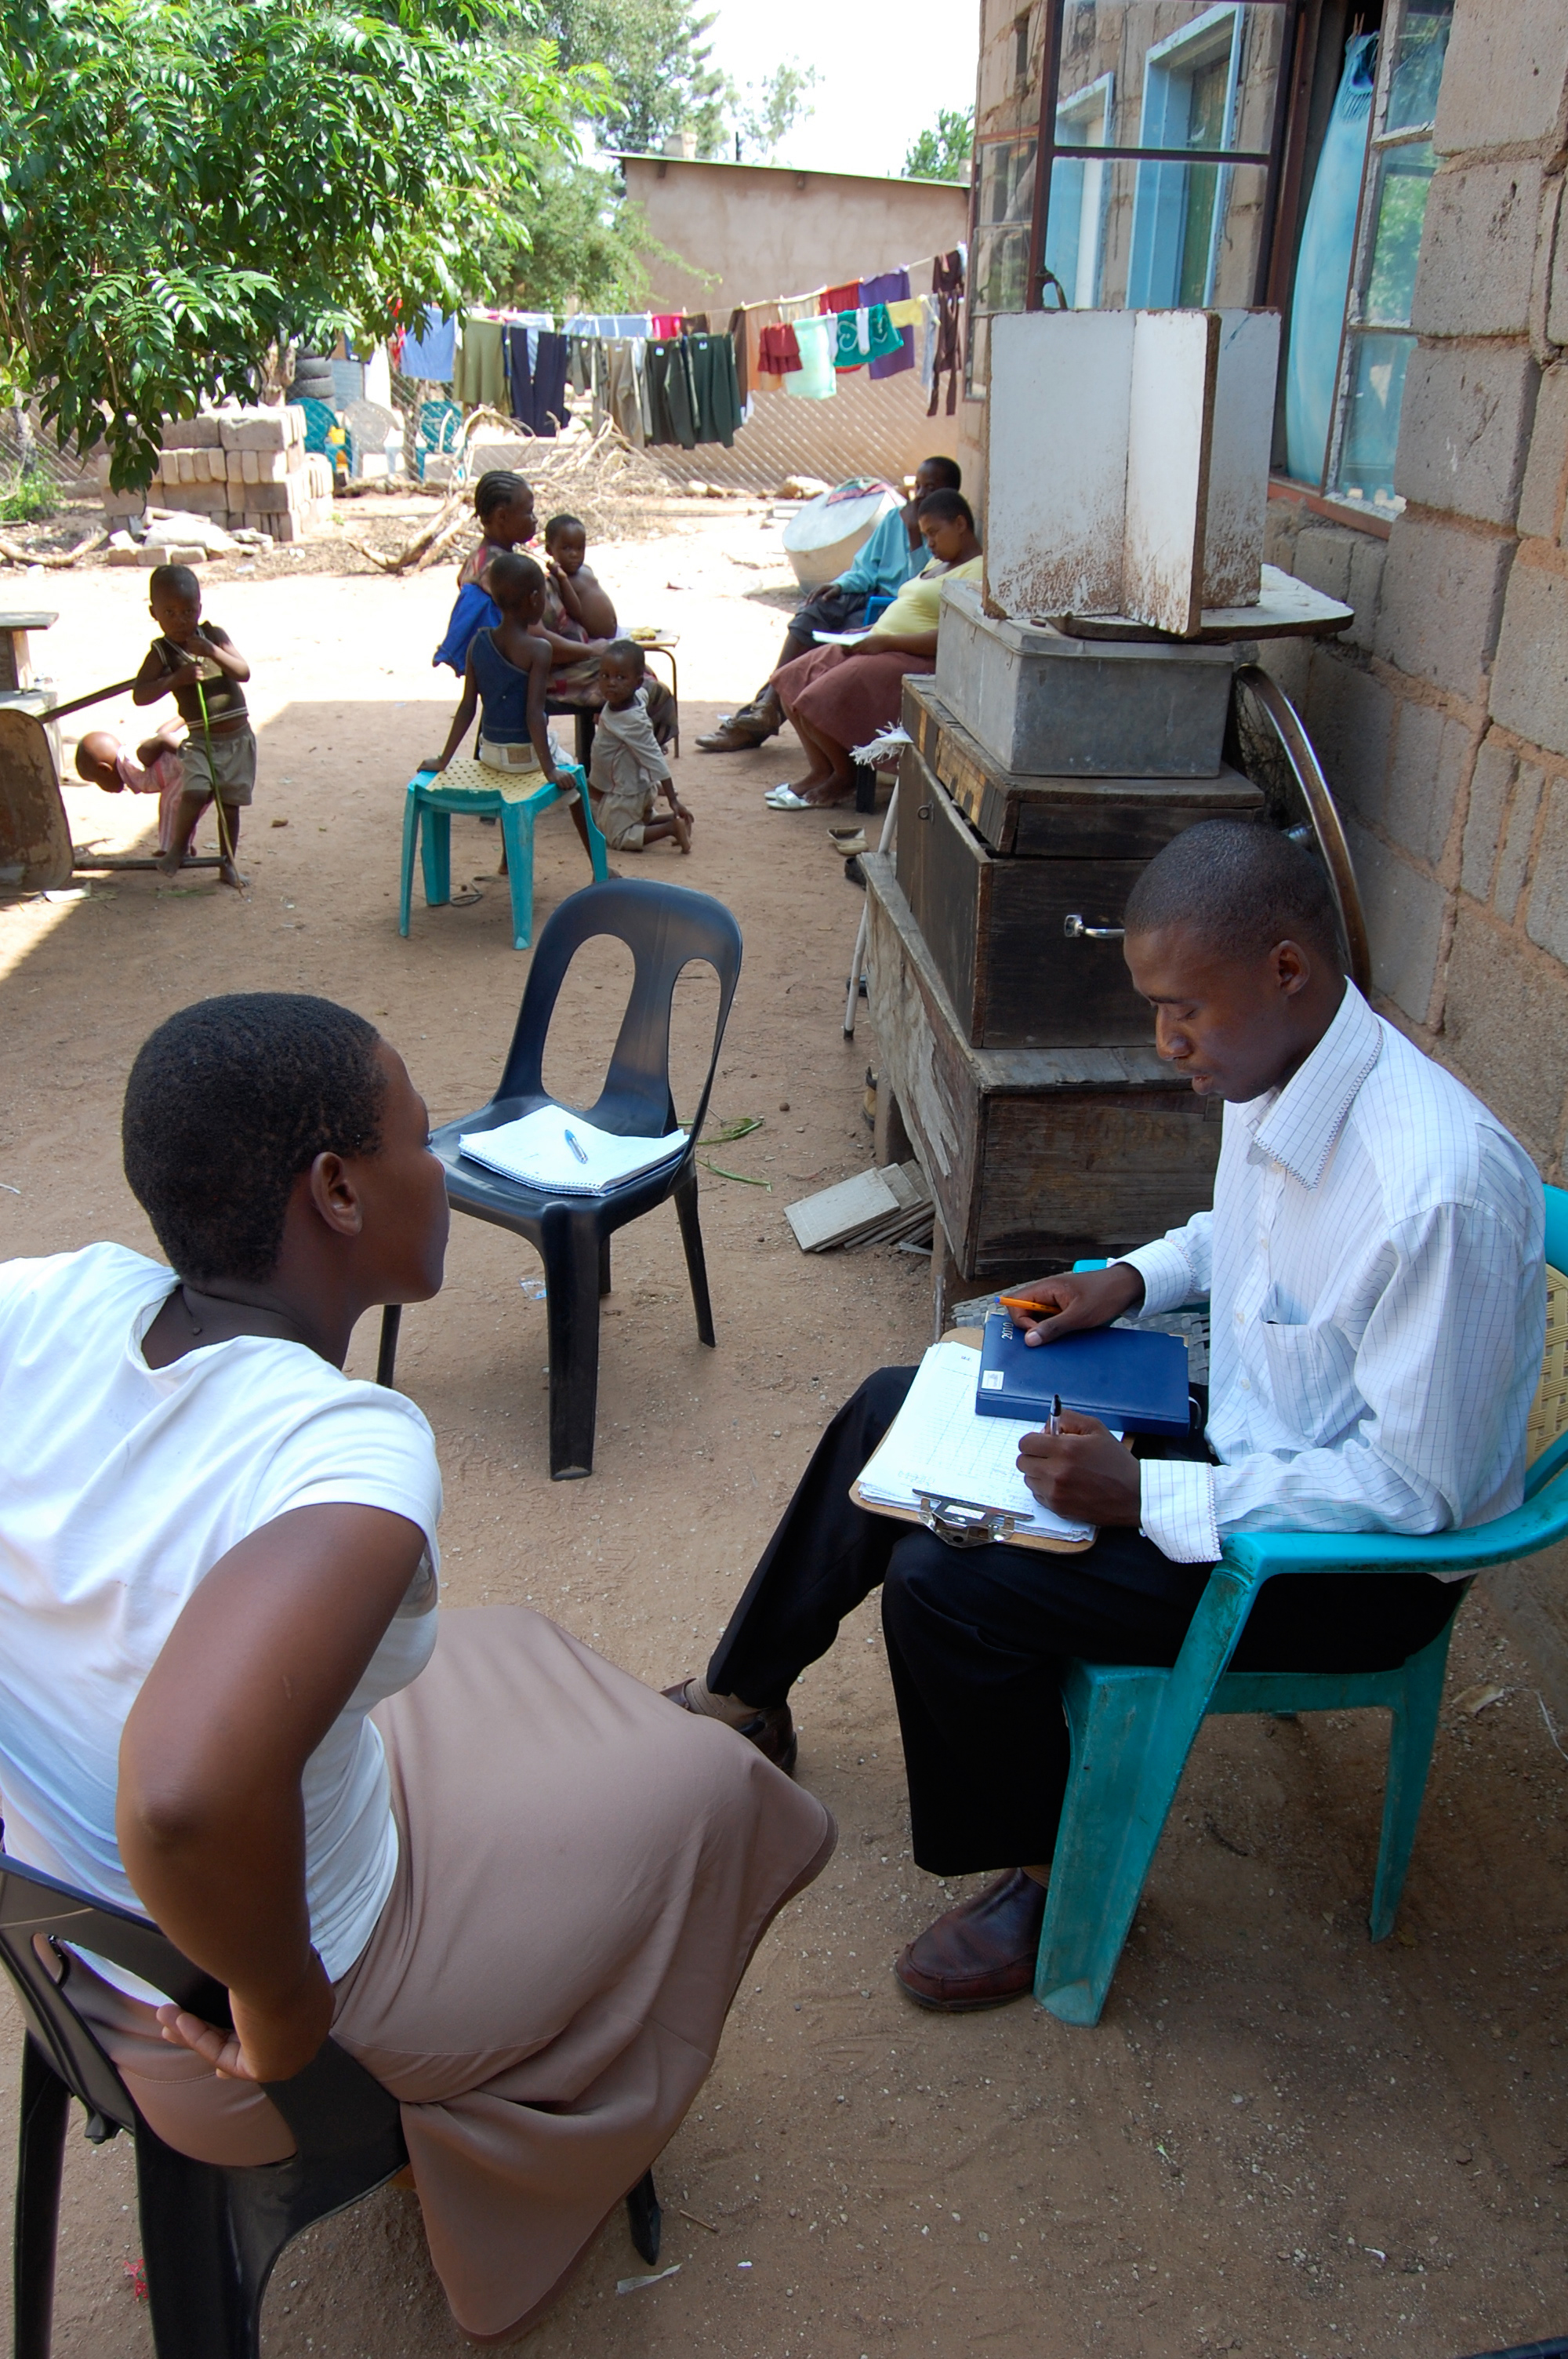 Male Botswanan Doctor working with young woman patient outside, with children waiting in the background